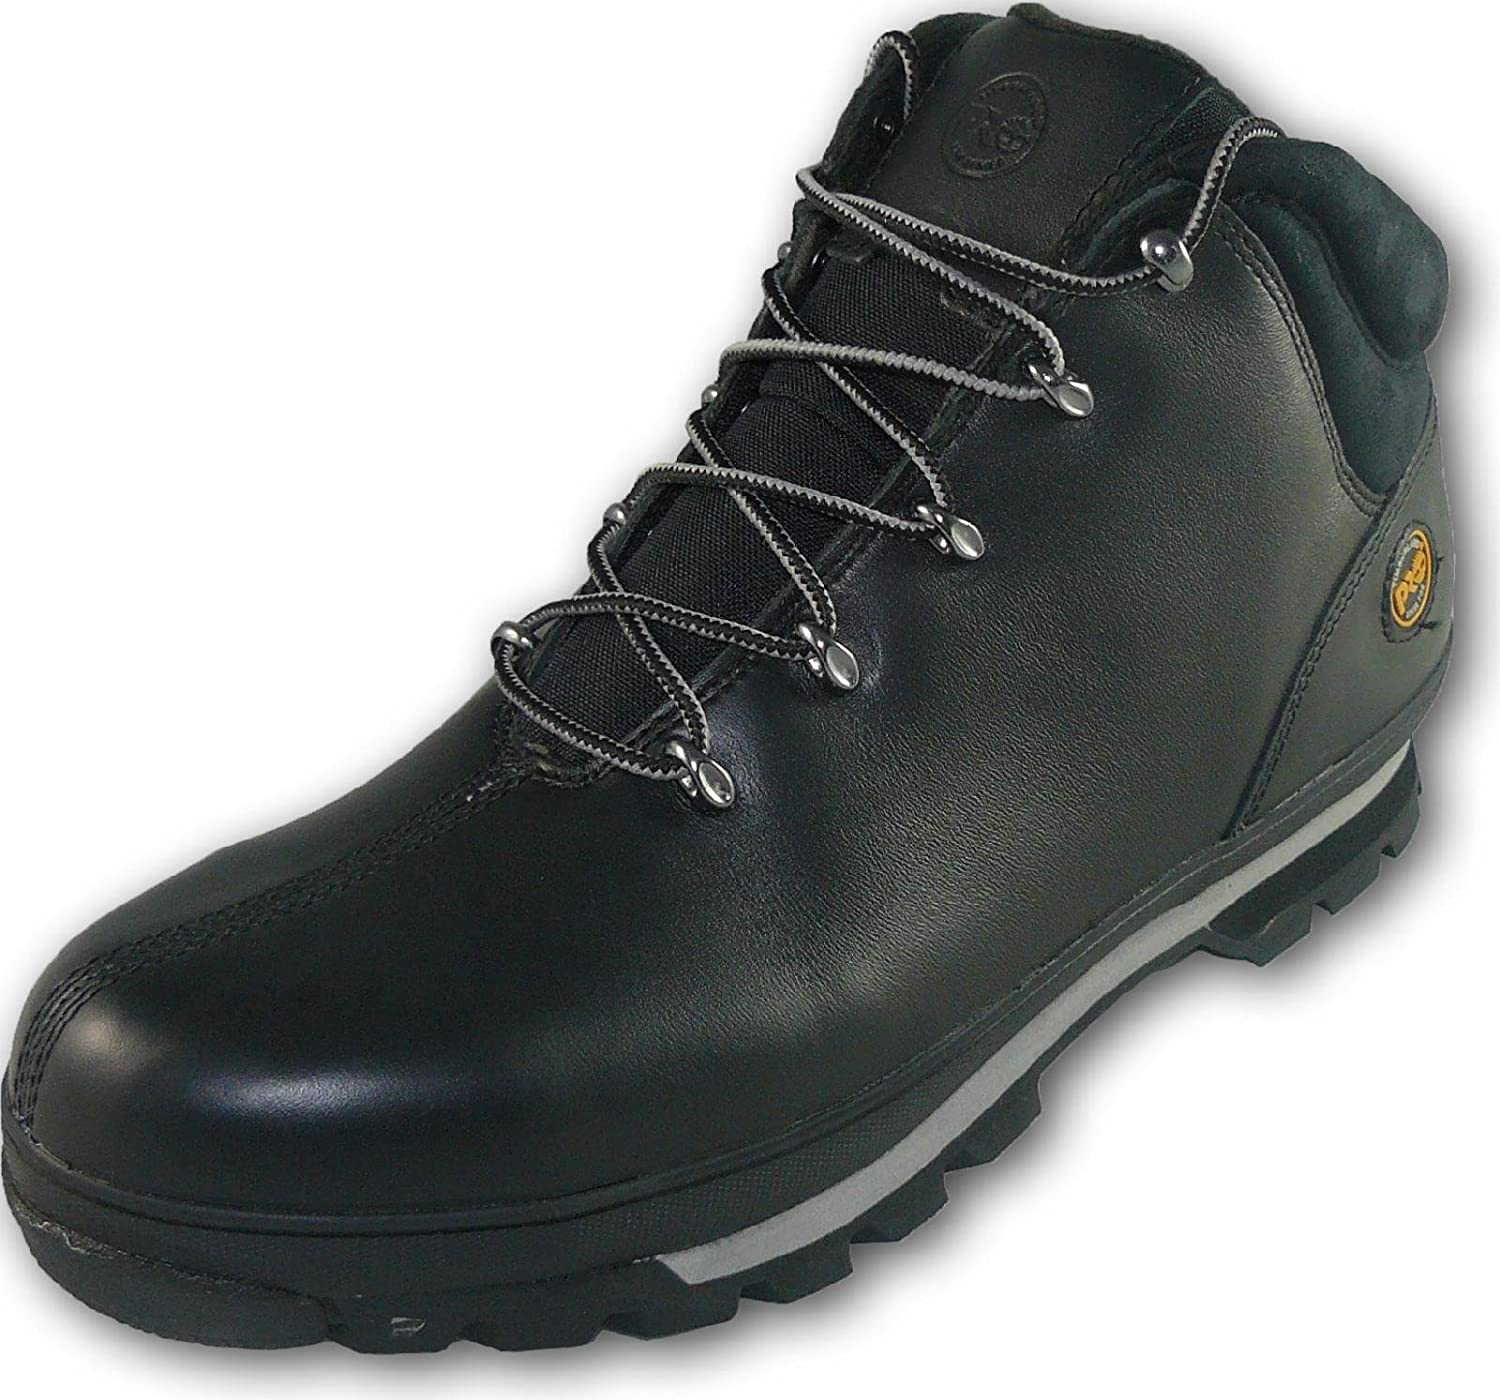 42588cc9c8e Timberland Pro UK 9 Splitrock Full Leather S3 Rating Steel Toe Work Safety  Boots - Black